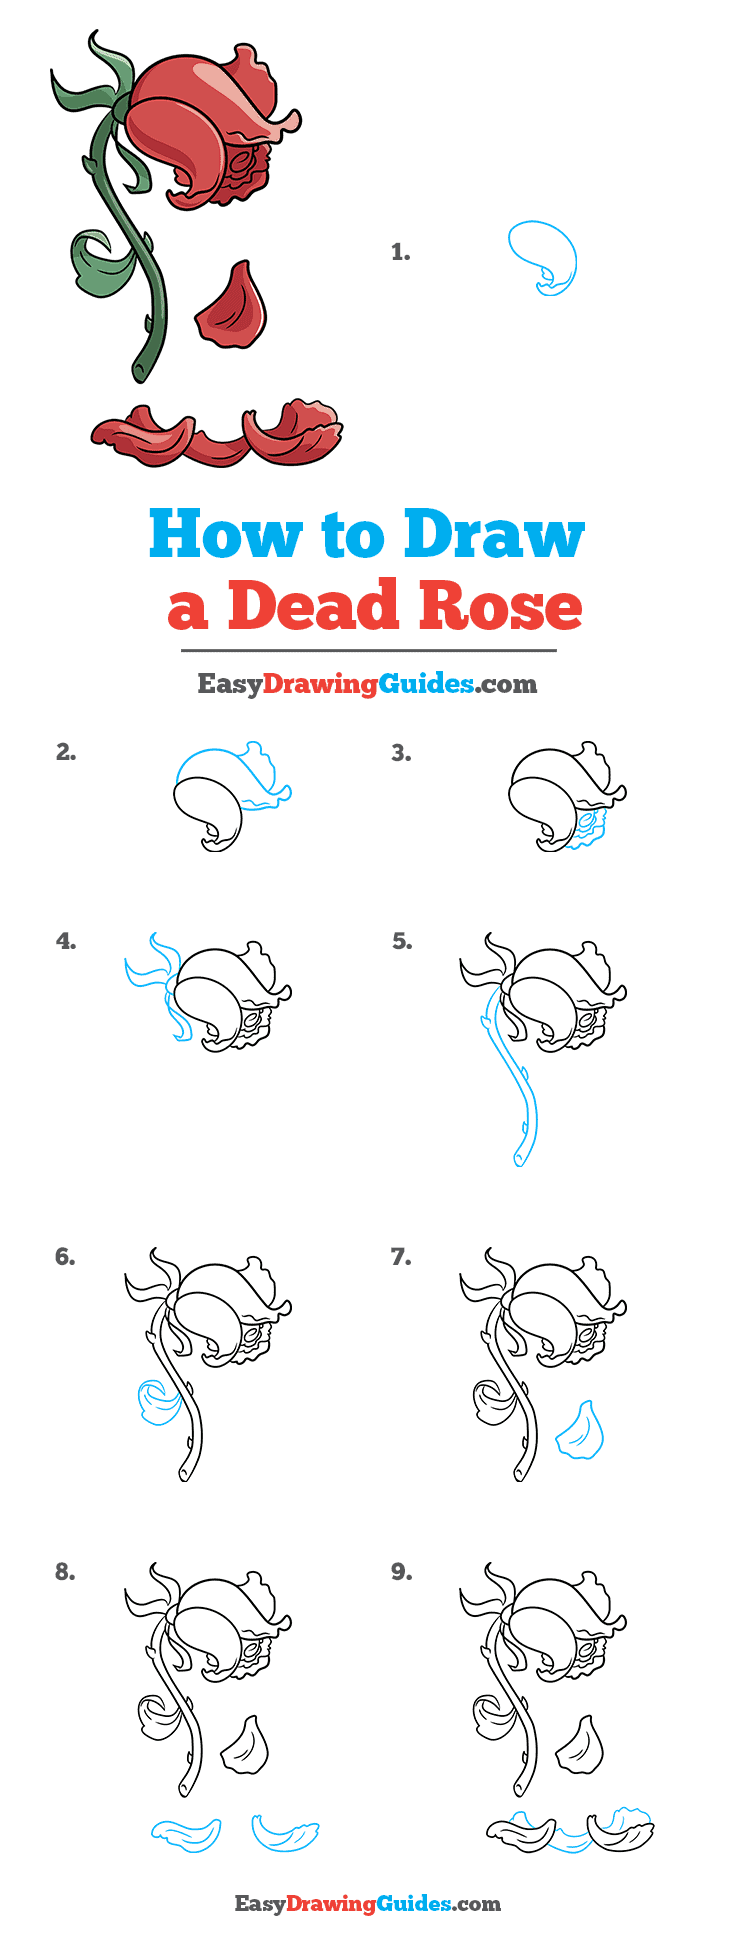 How to Draw Dead Rose